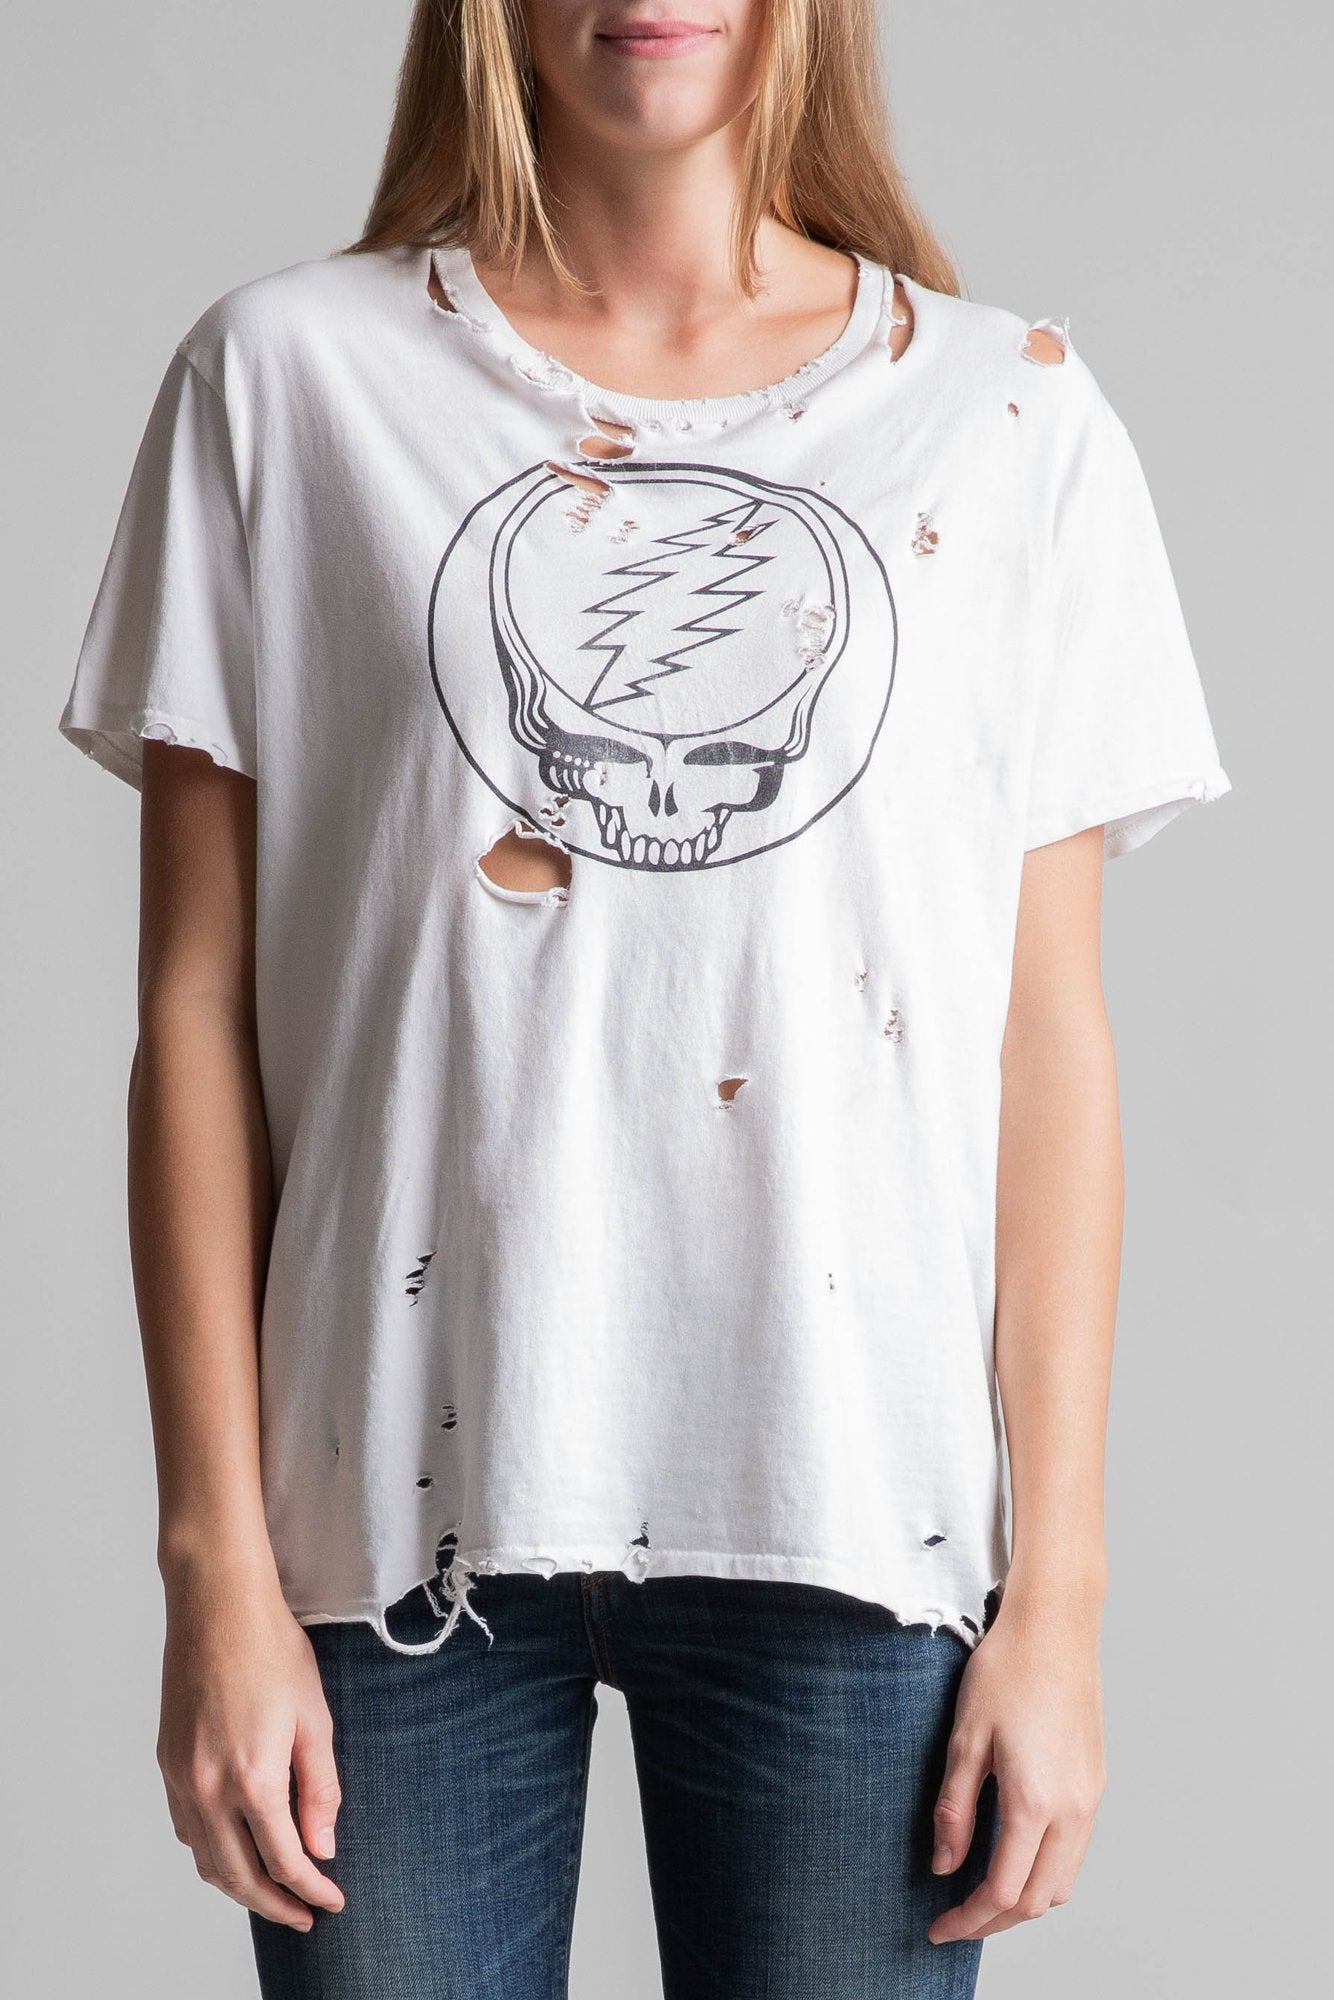 Steal Your Face Distressed Boy T– White